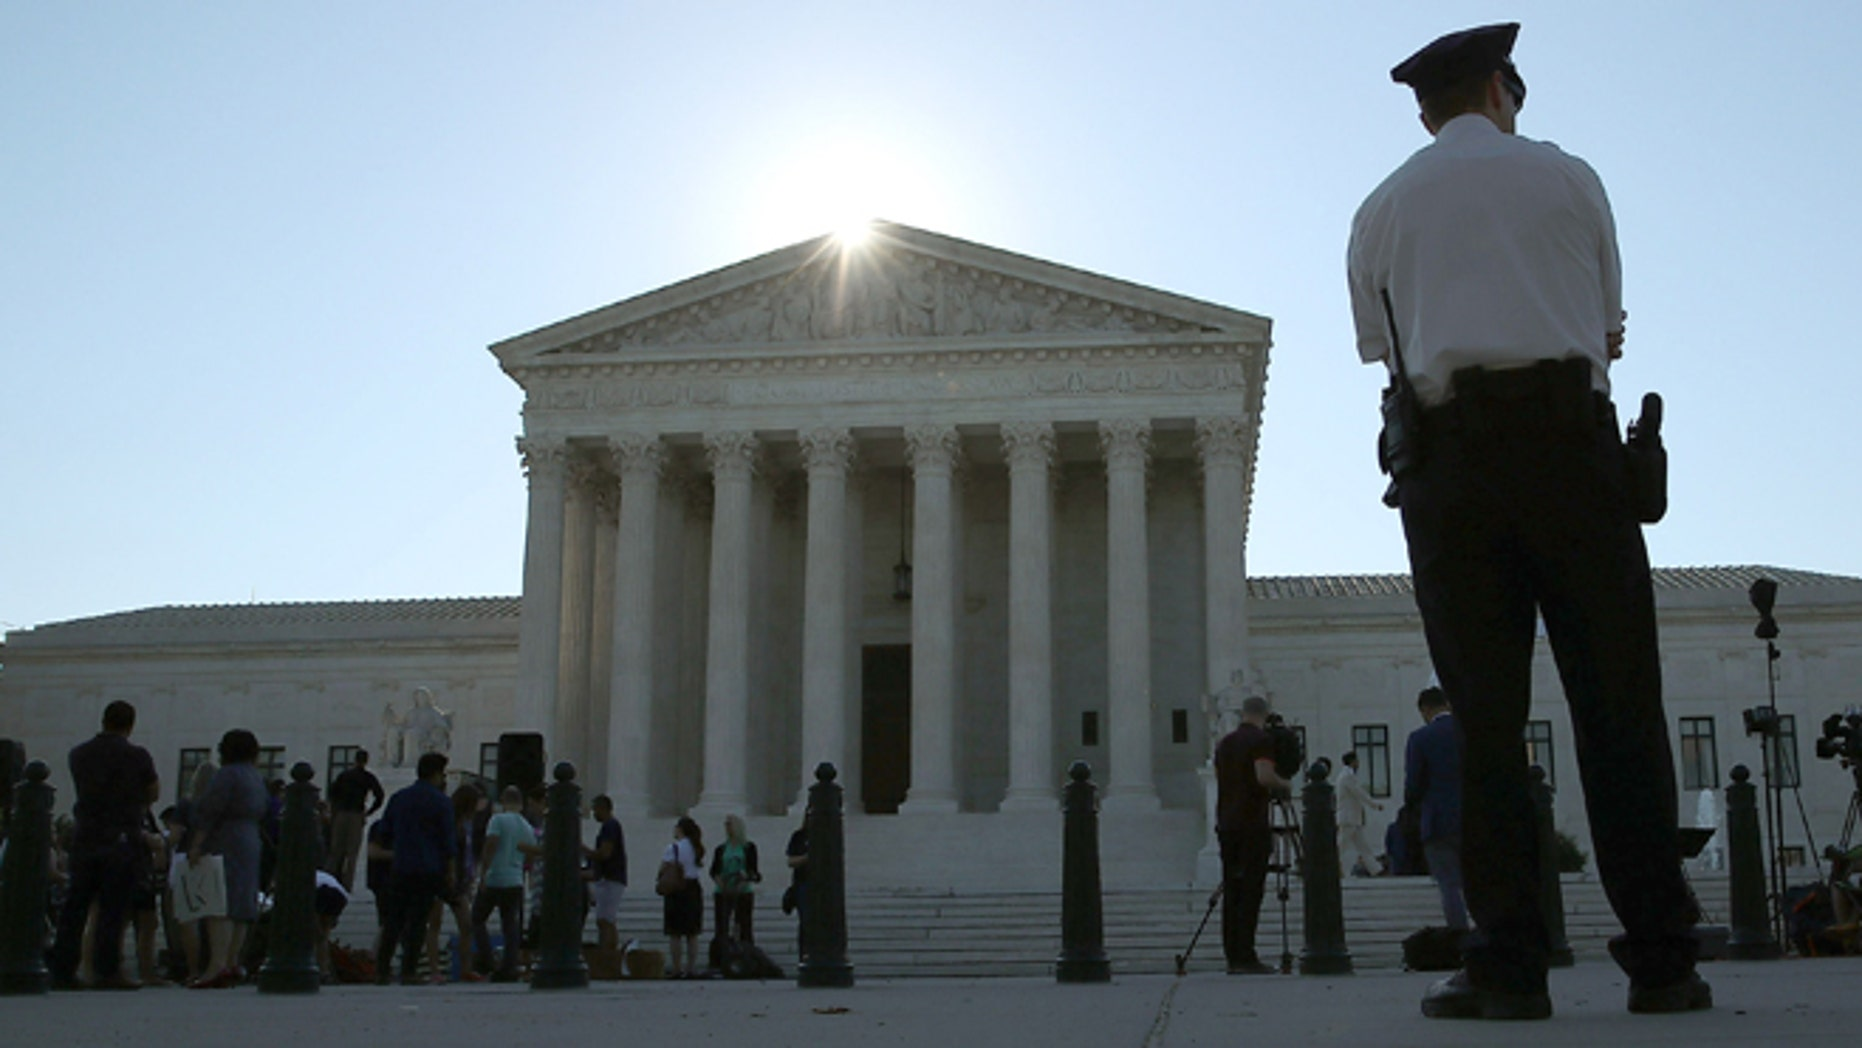 WASHINGTON, DC - JUNE 20: A police officer stands in front of the U.S. Supreme Court building June 20, 2016 in Washington, DC. The high court still has four decisions to hand down before their summer break next week.  (Photo by Mark Wilson/Getty Images)